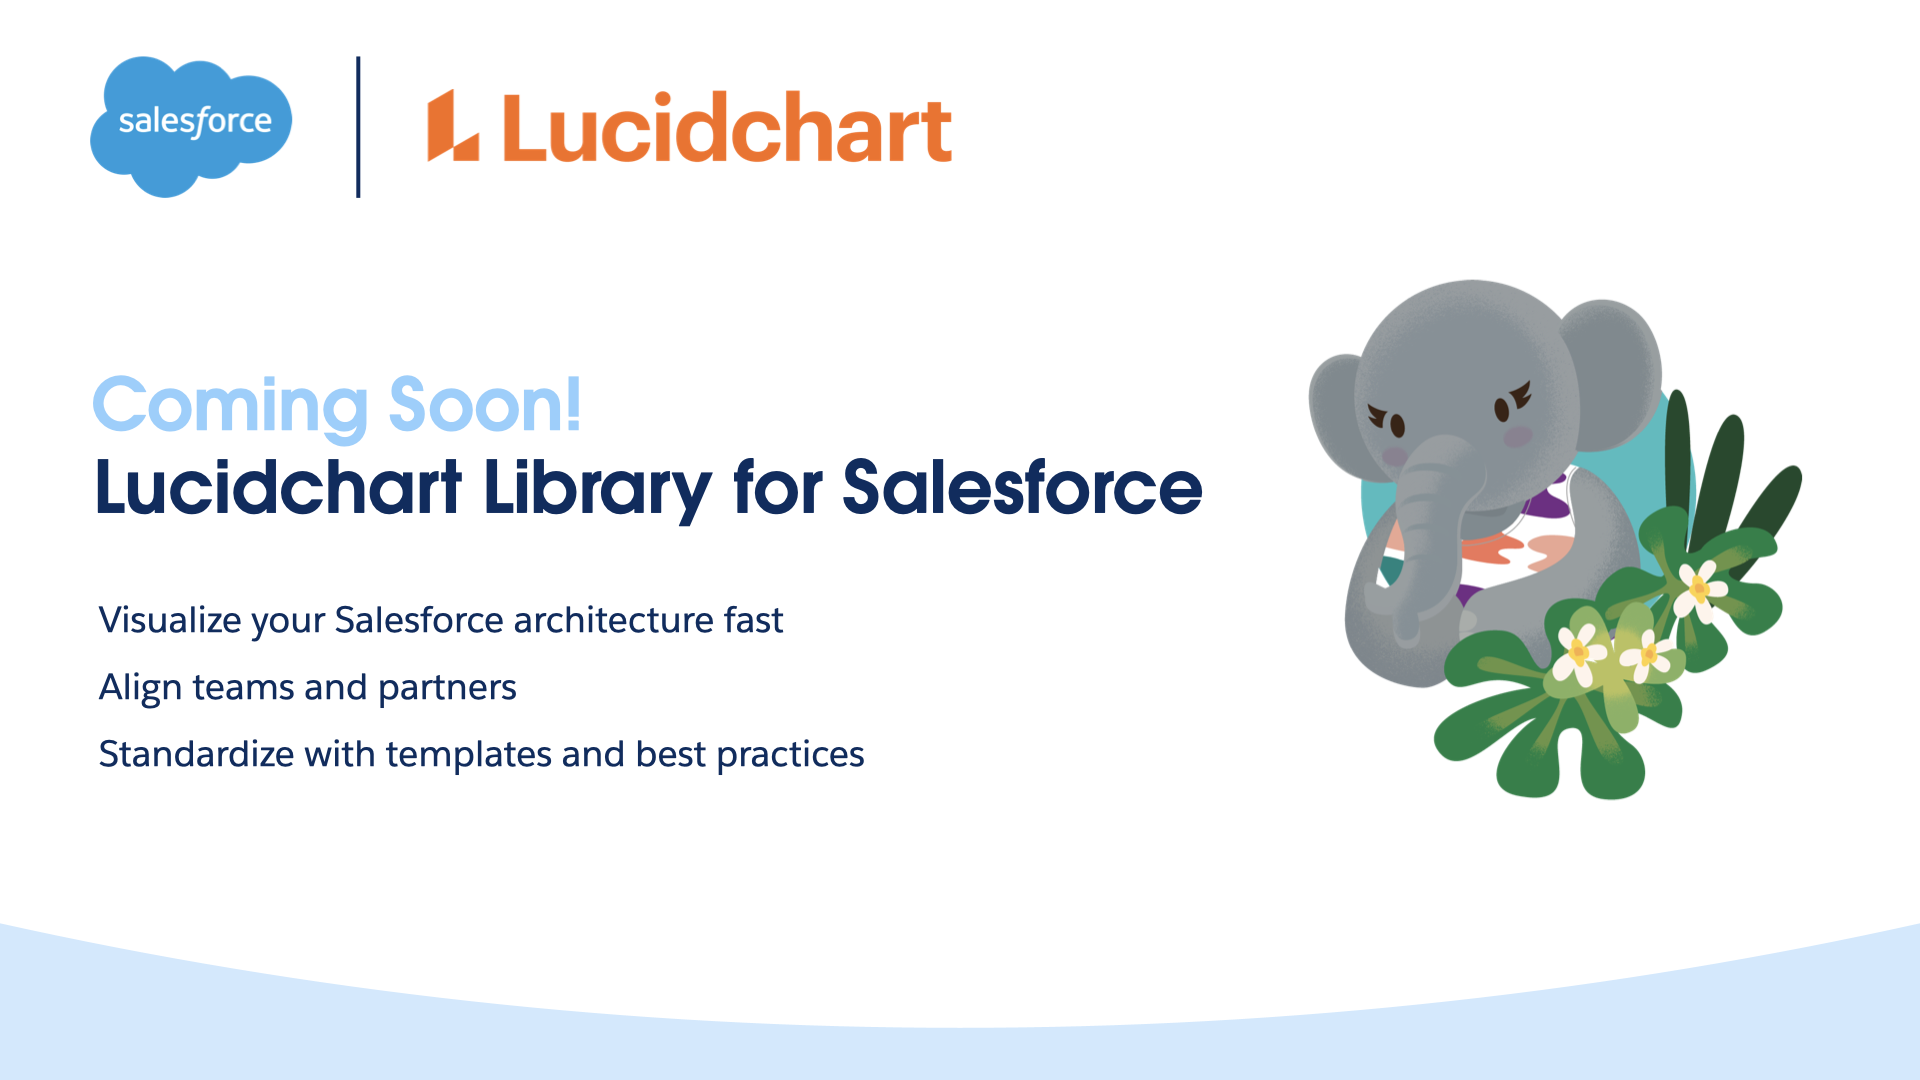 Lucidchart Library for Salesforce